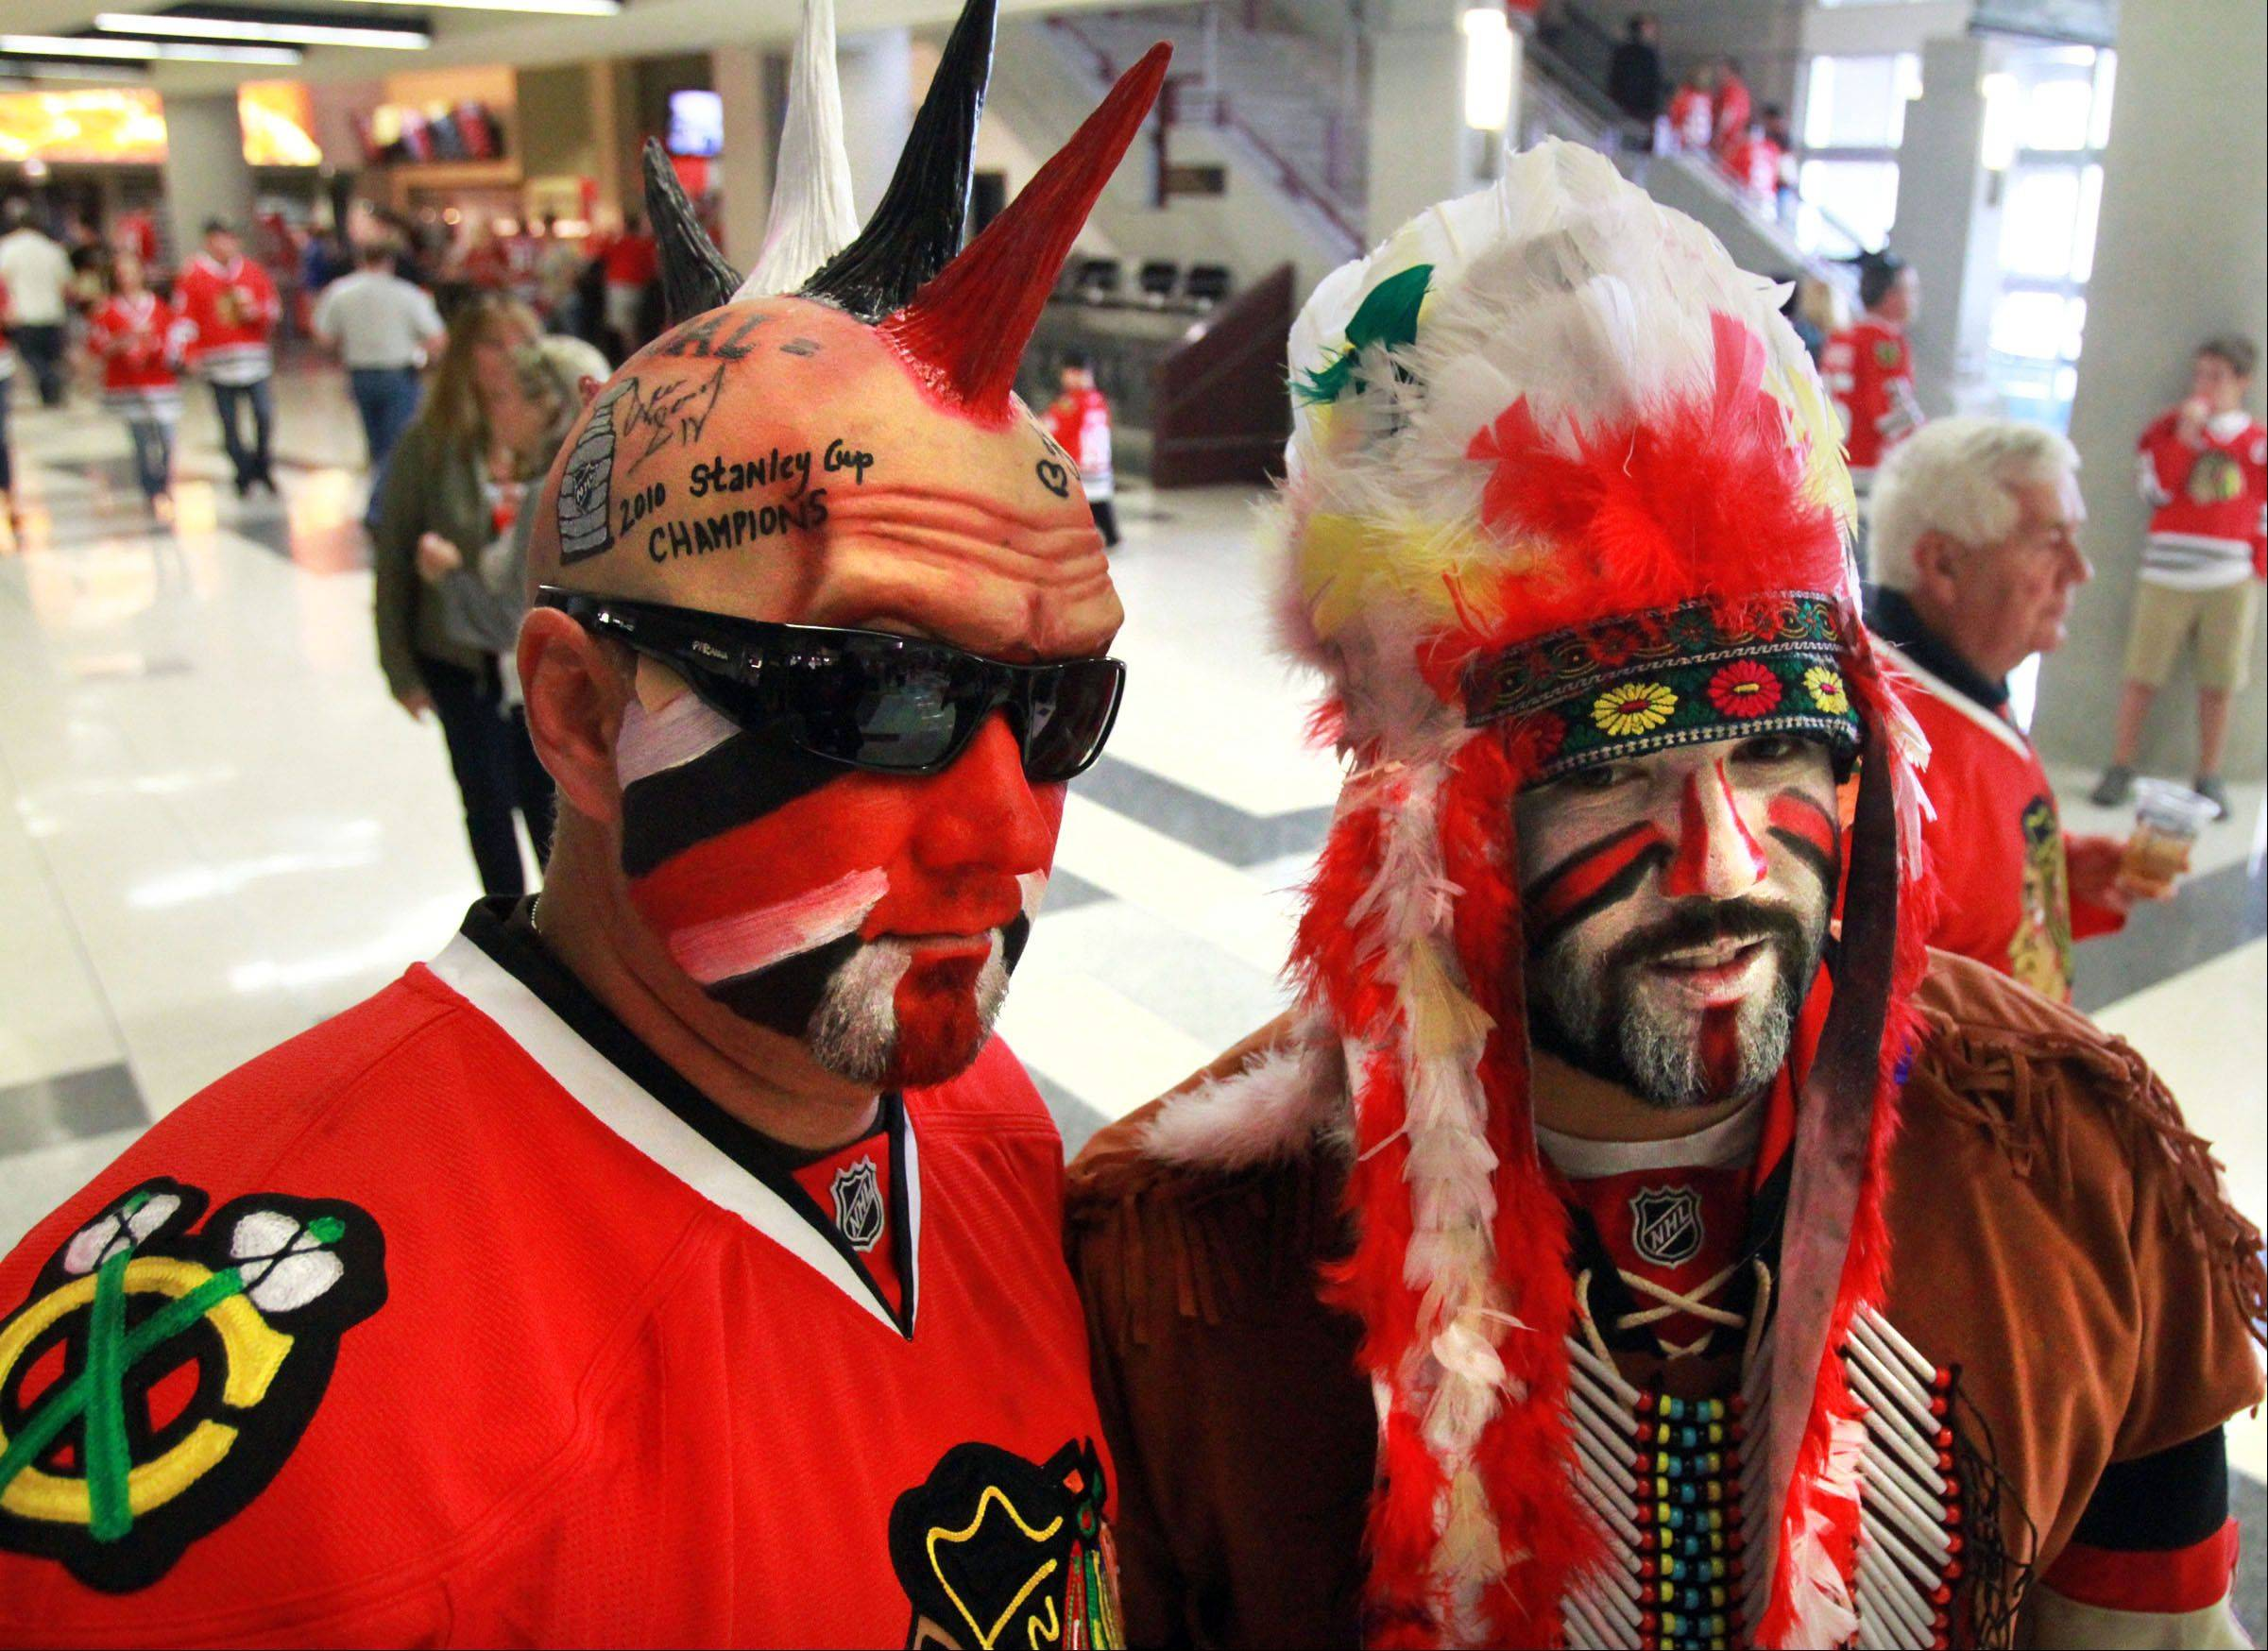 Jake Basich and Steve Desancic of Indiana arrived at the Western Conference semifinal playoffs in Chicago complete with face paint.